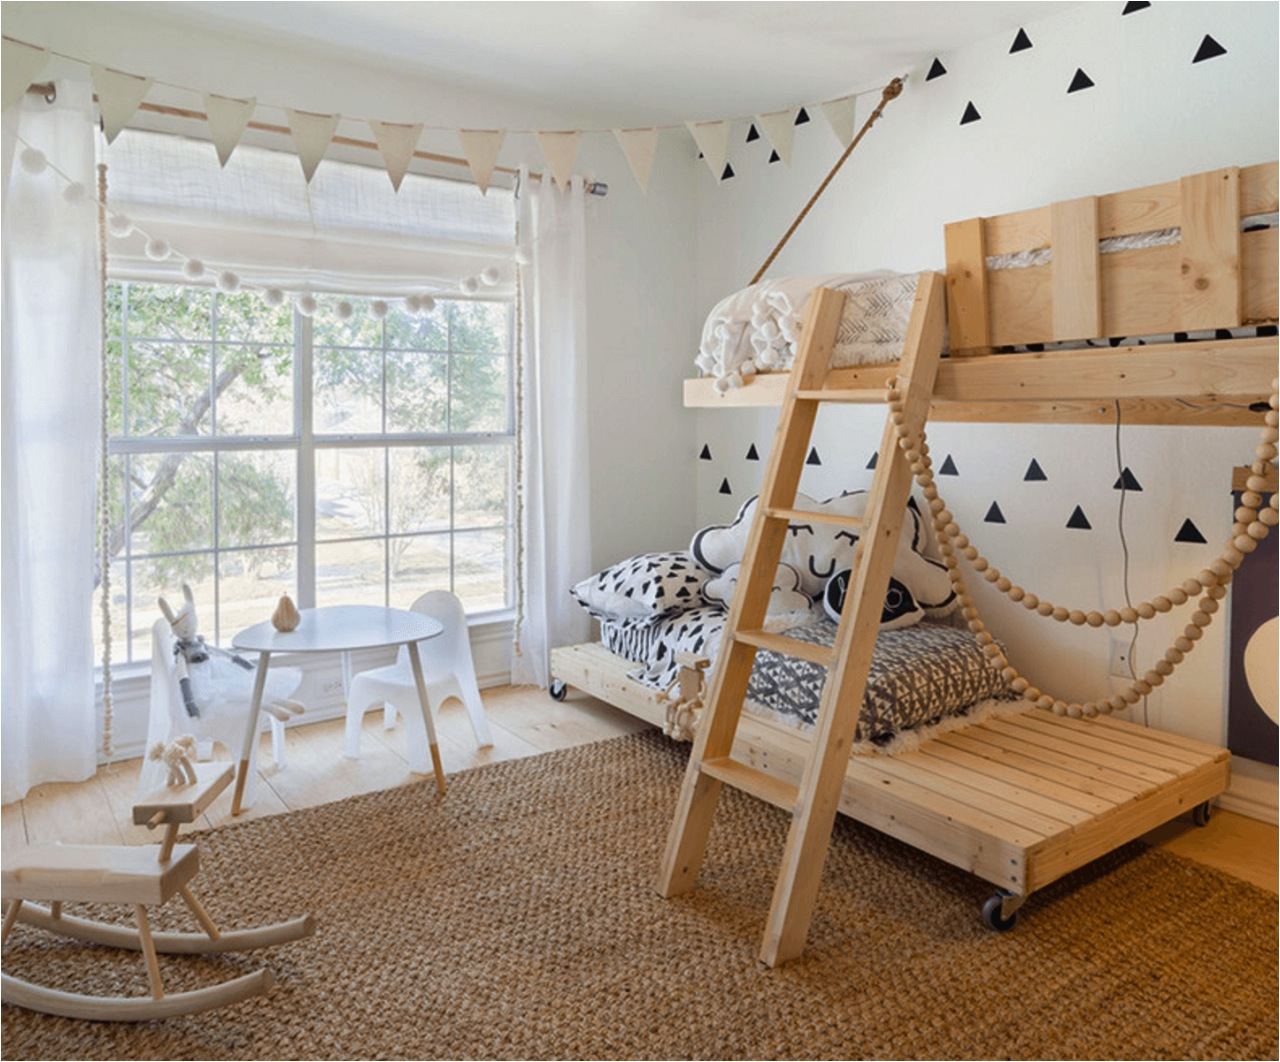 The coolest kids bunk beds ever petit small Awesome bunk beds for kids